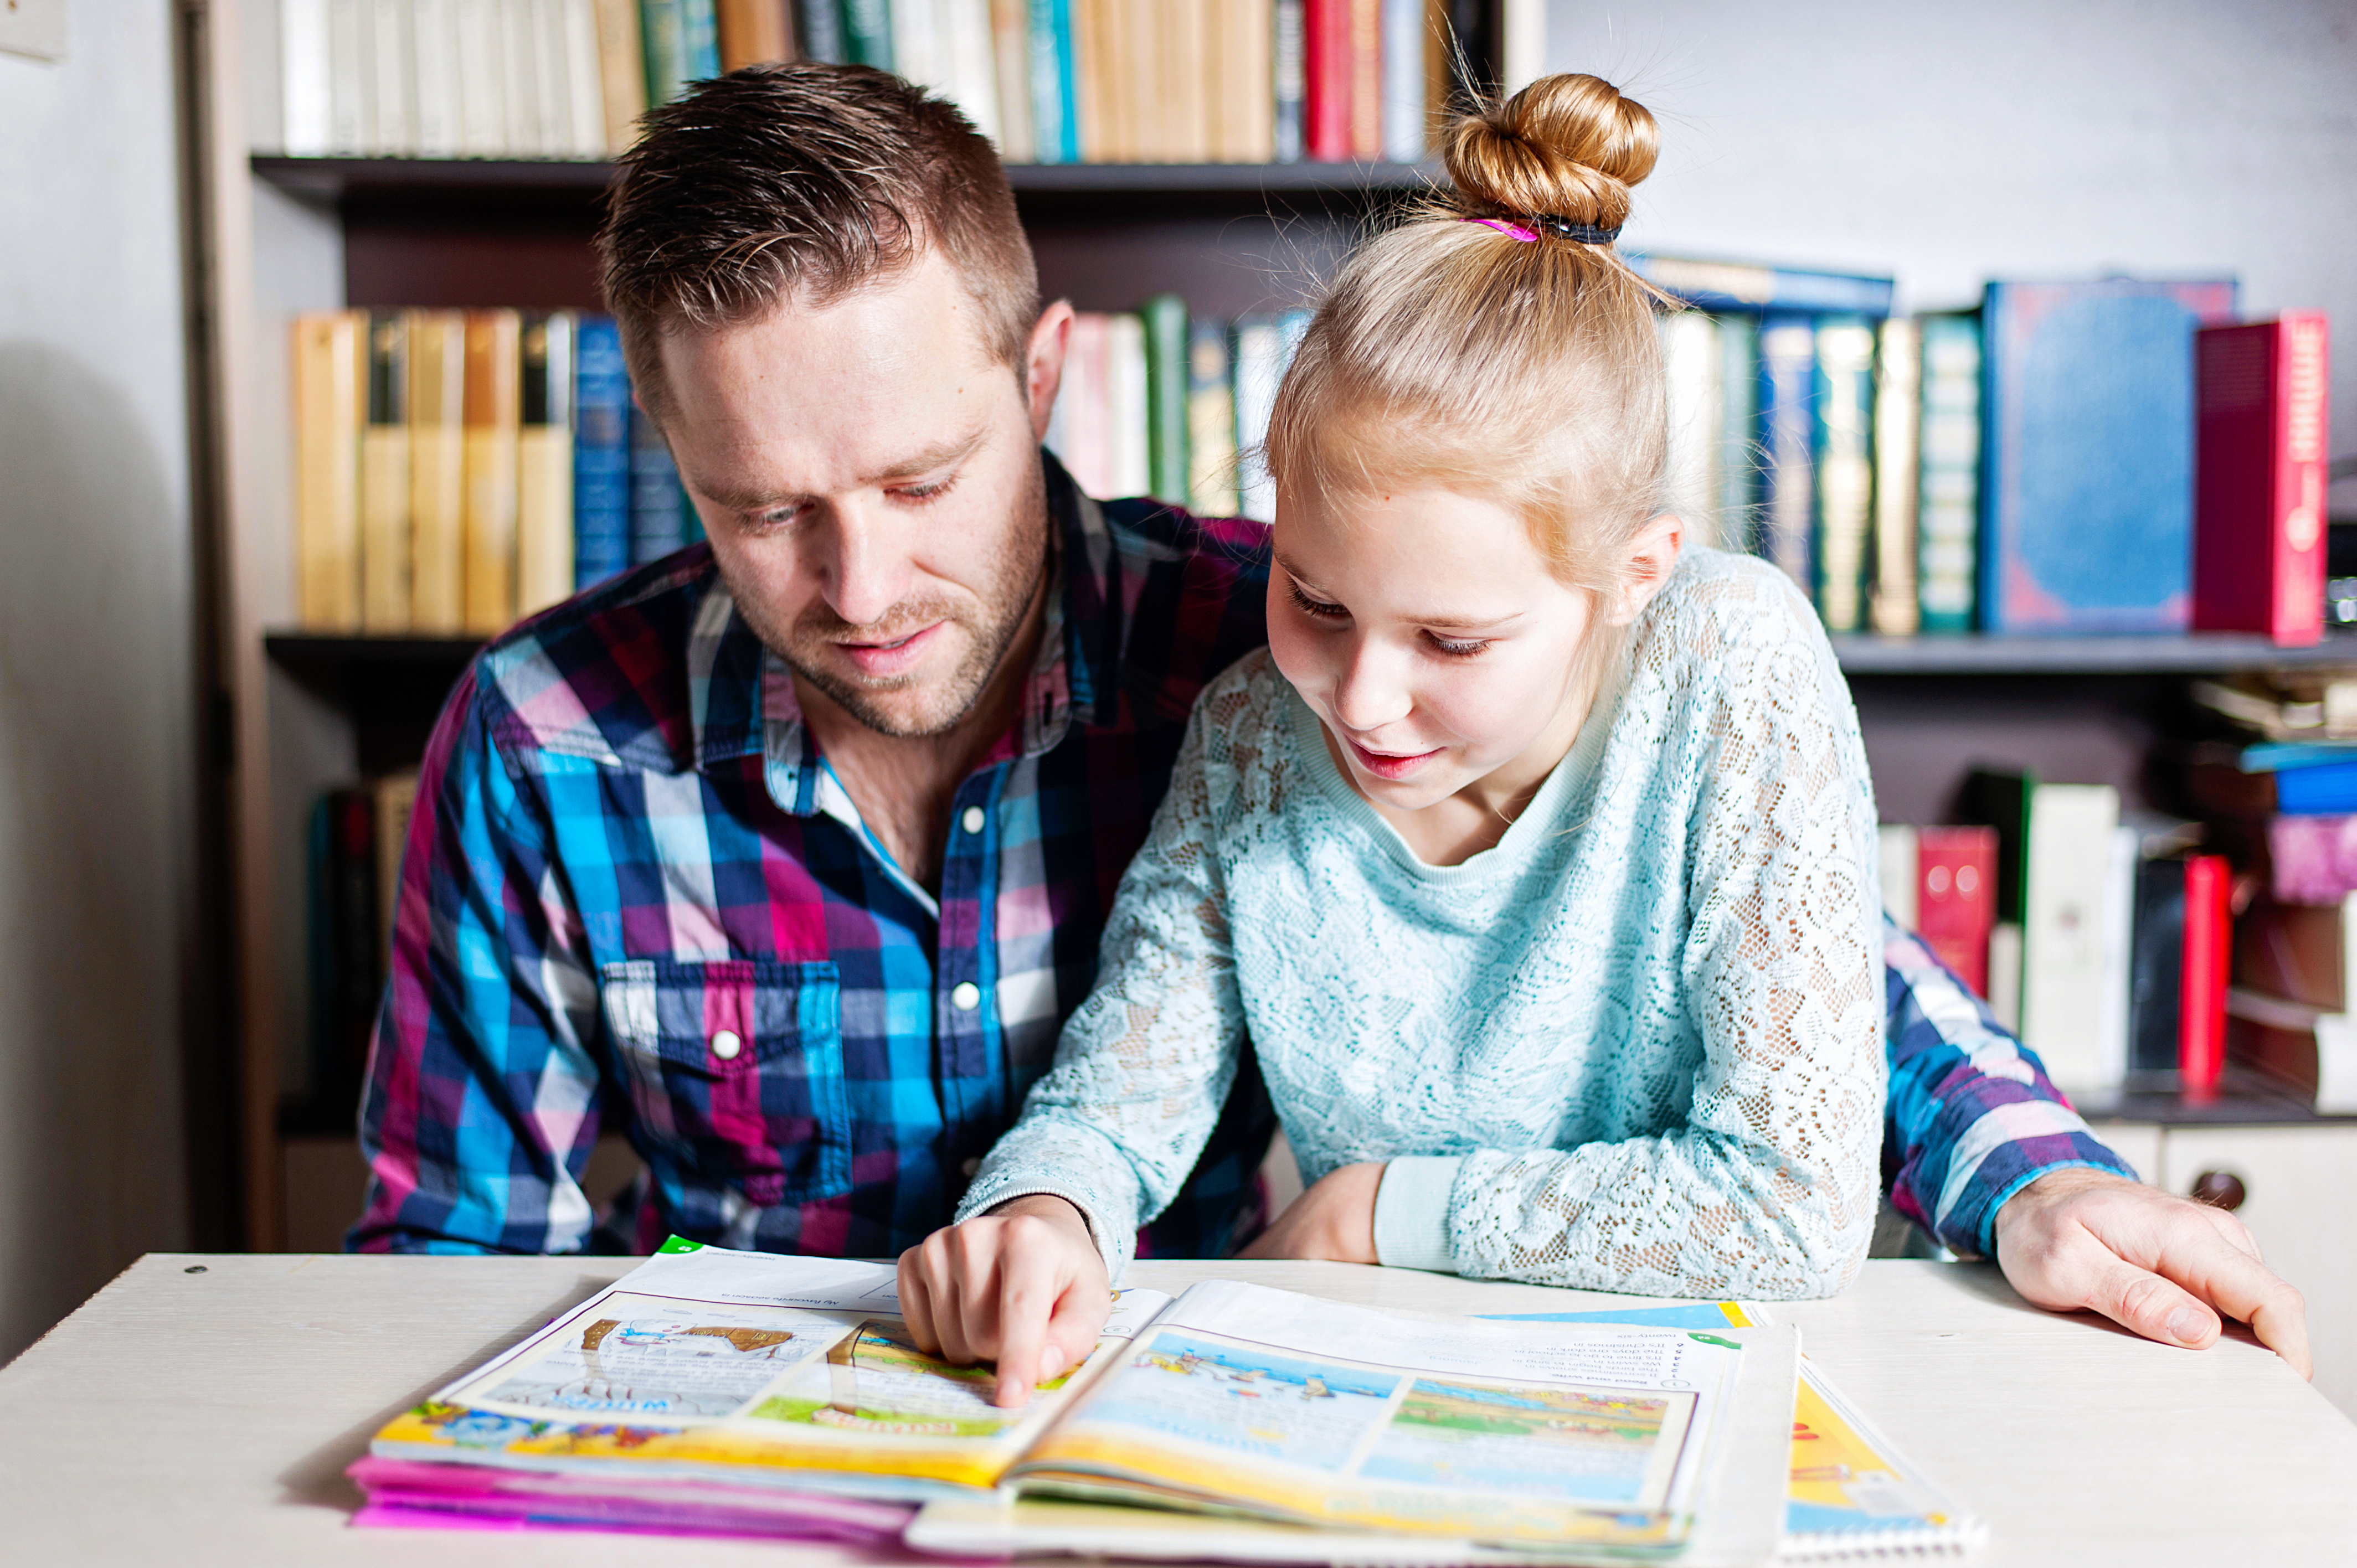 A benefit of homeschooling is customized lesson plans